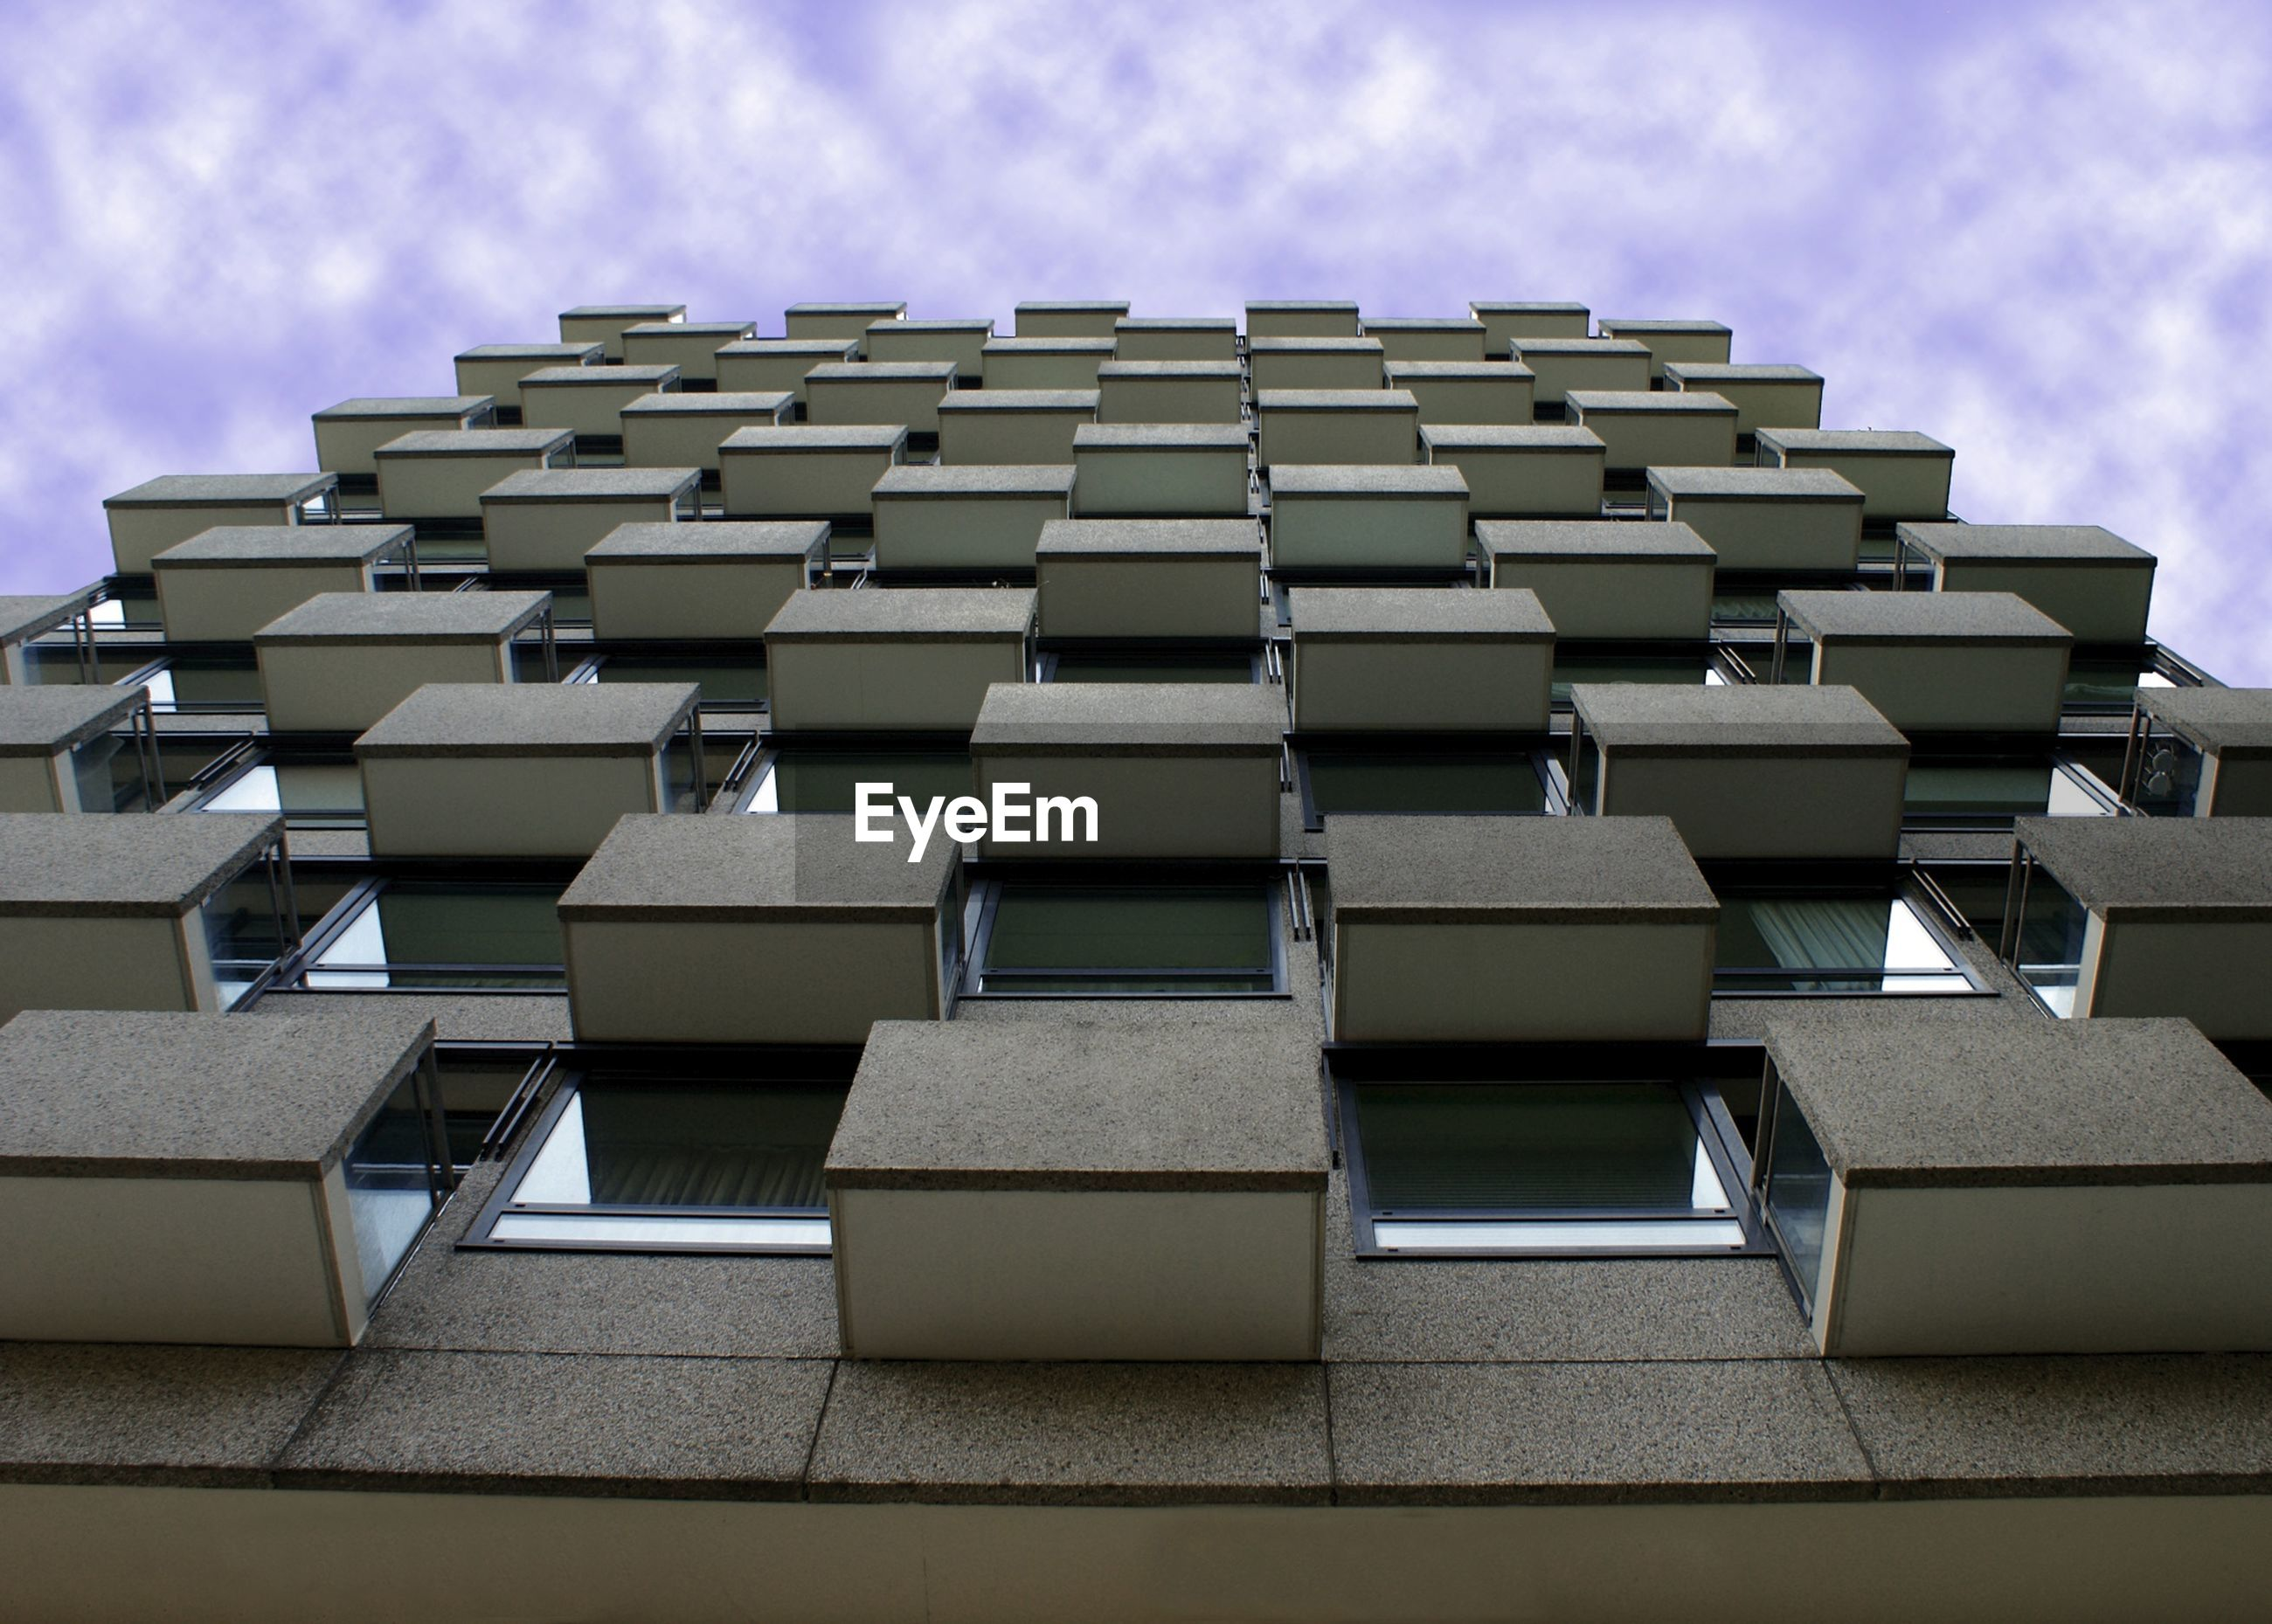 building exterior, architecture, built structure, sky, low angle view, repetition, in a row, modern, building, city, cloud - sky, office building, side by side, cloud, day, pattern, outdoors, no people, window, architectural feature